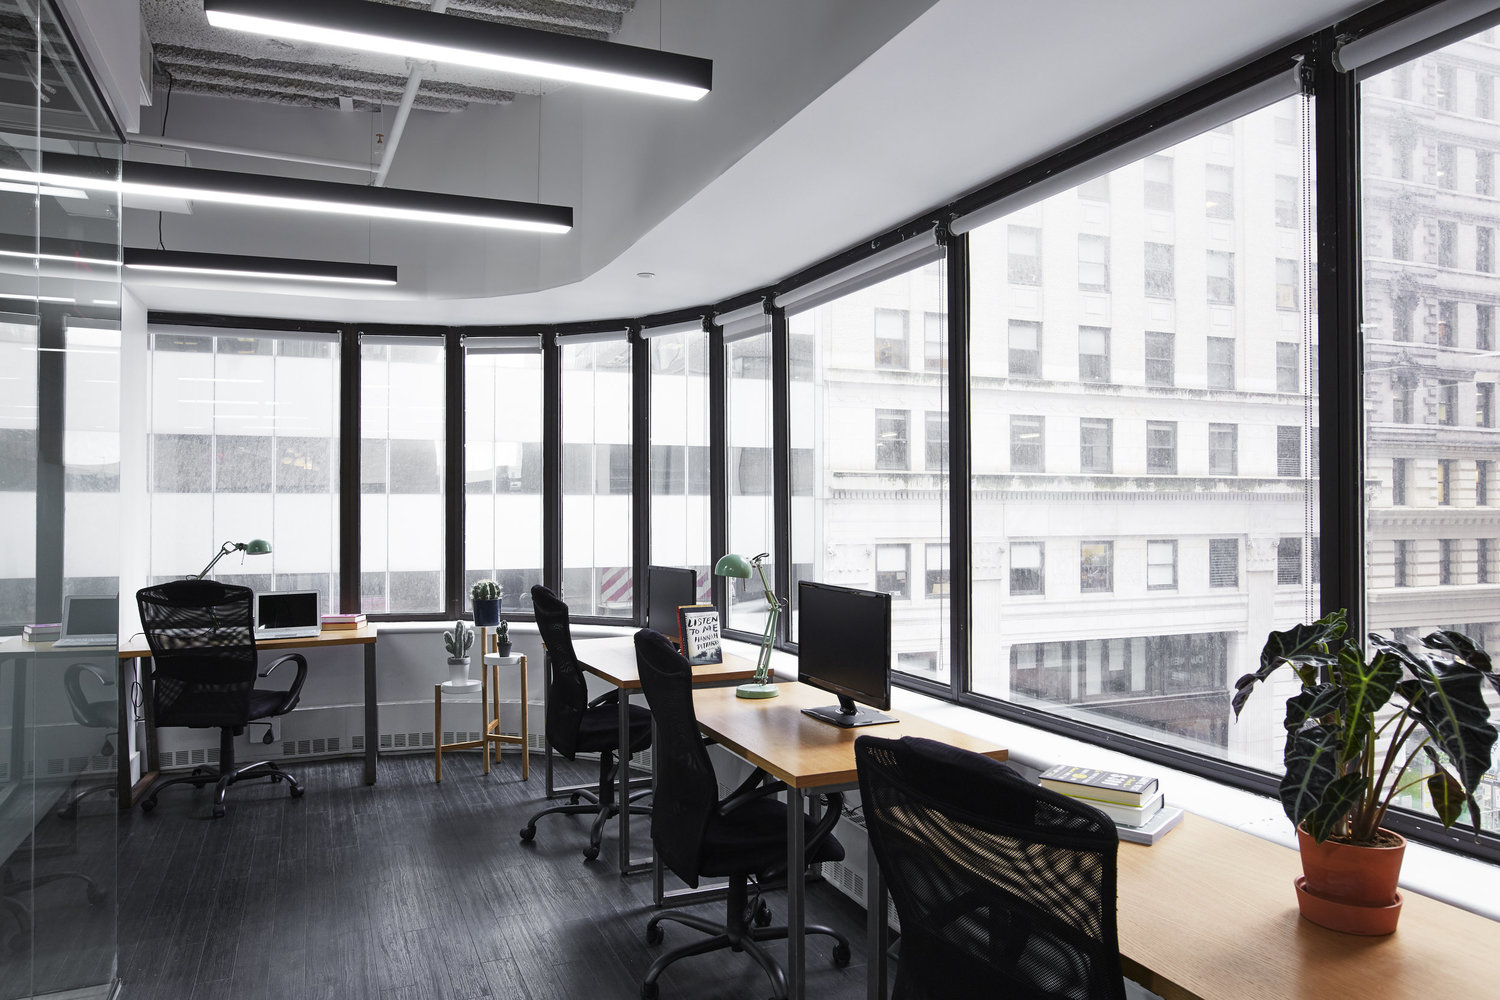 Interior of a startup office space